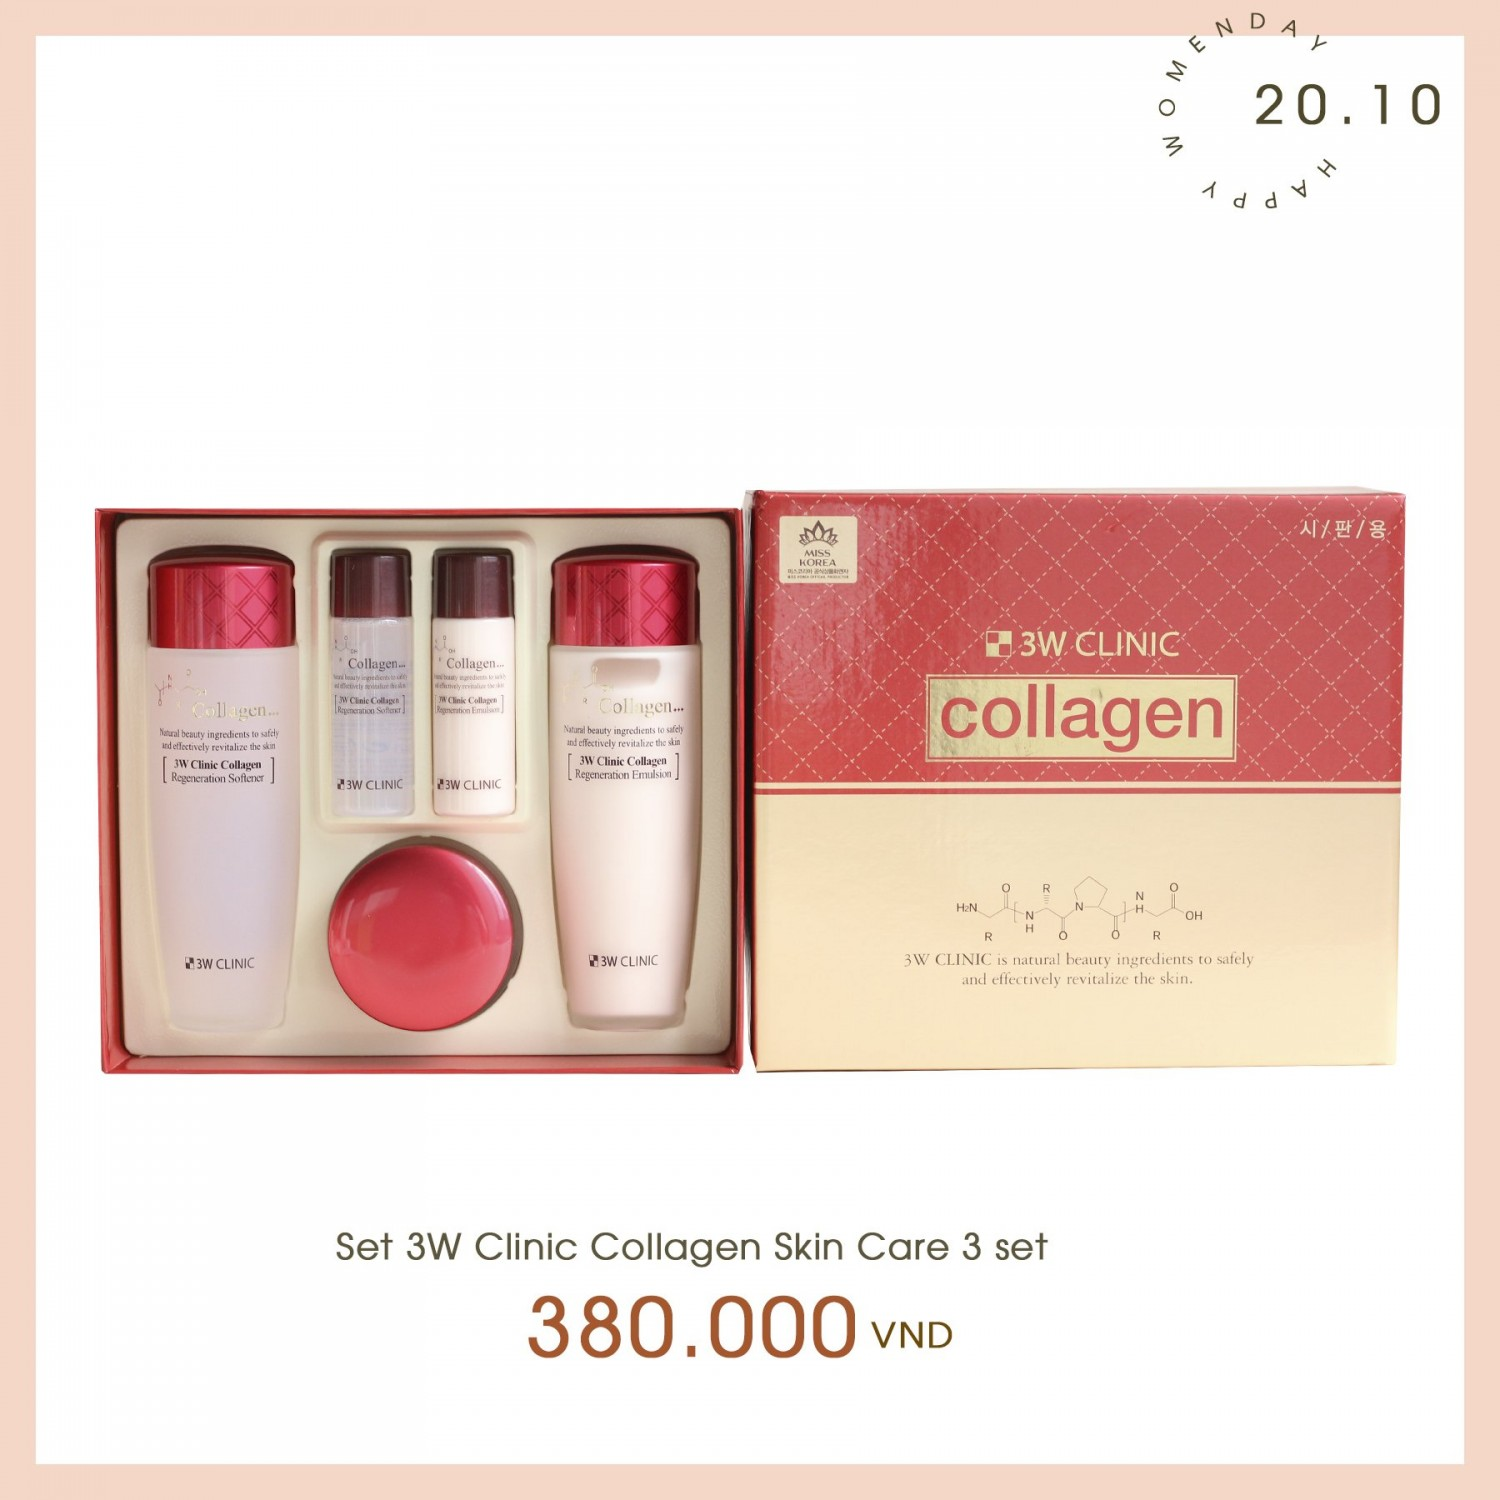 set 3w clinic collagen skin care 1